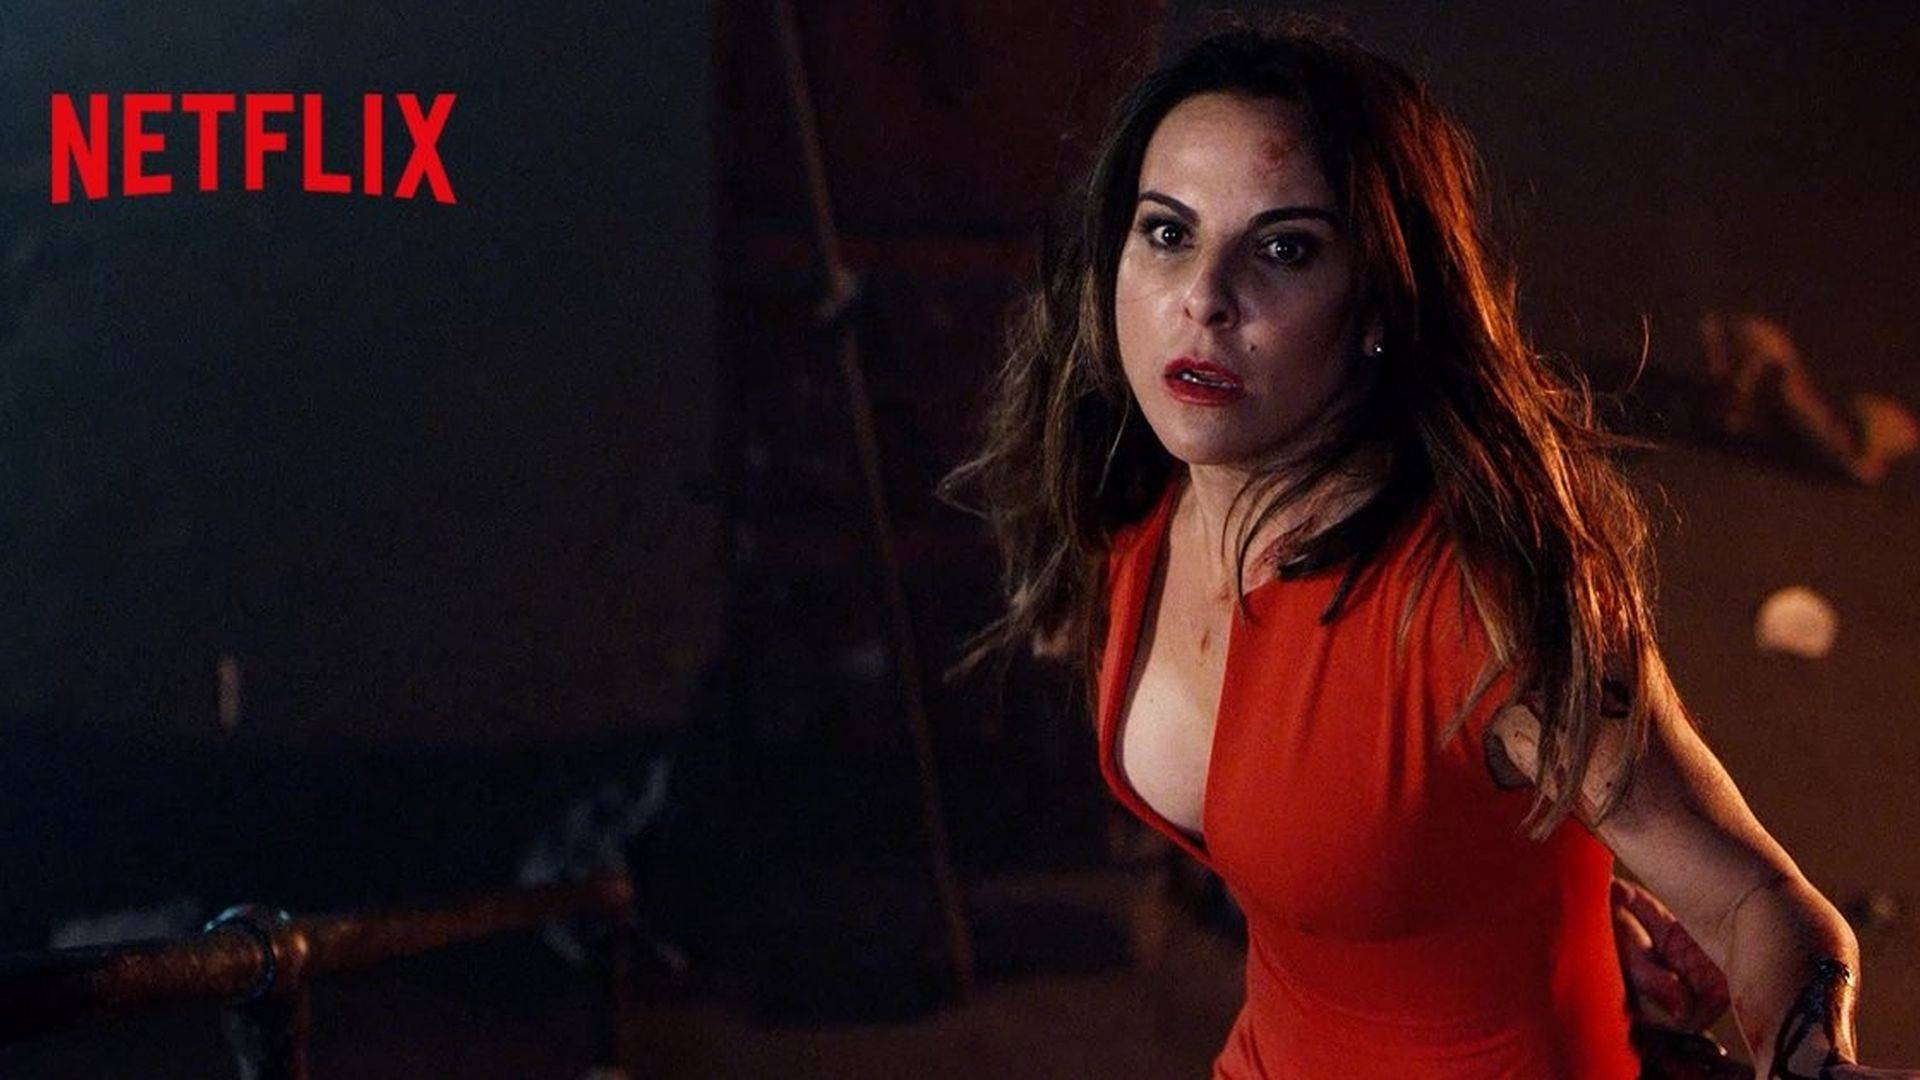 Ingobernable No Tendrá Temporada 3 Por Motivos Políticos Dice Kate Del Castillo N Digital